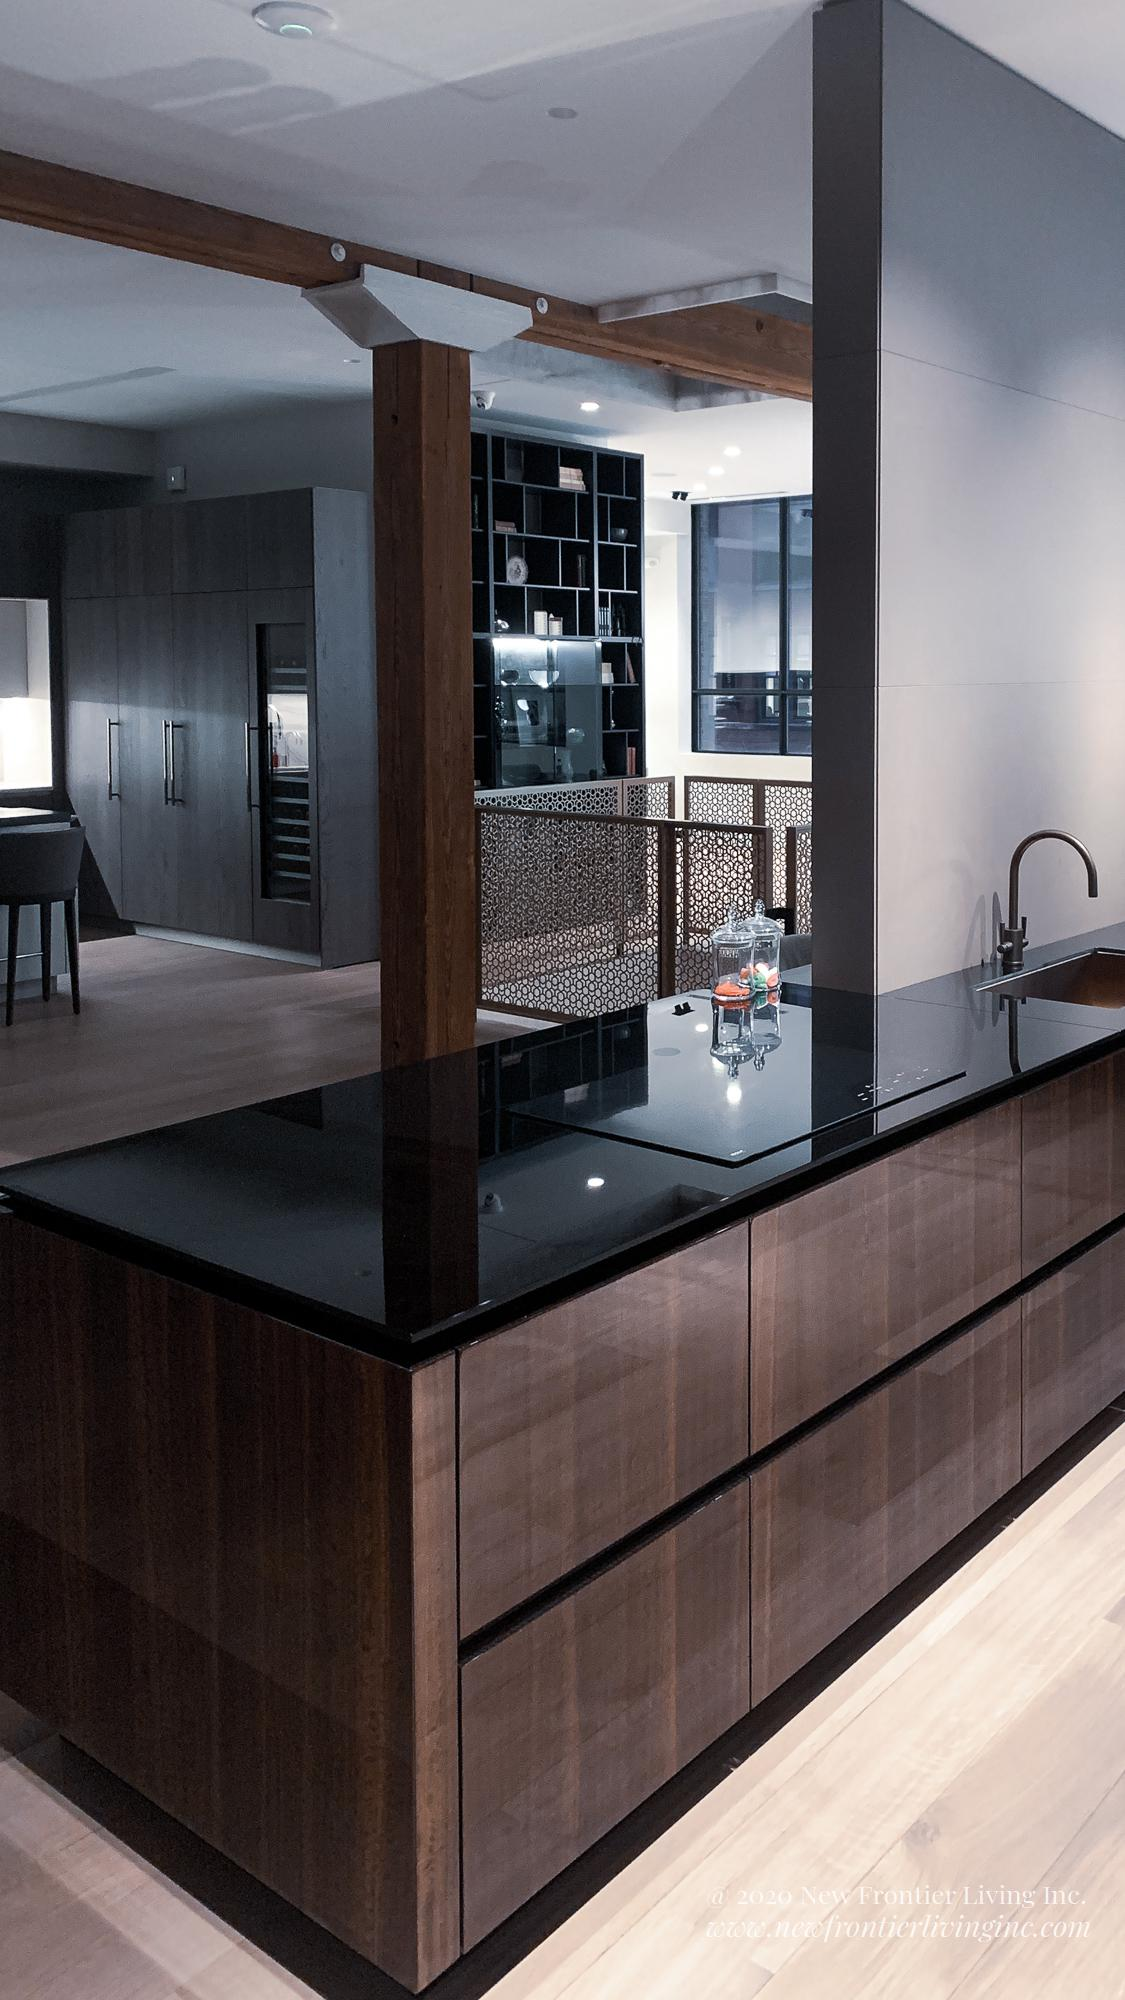 Black and Brown glossy kitchen with black countertop, no handle drawers